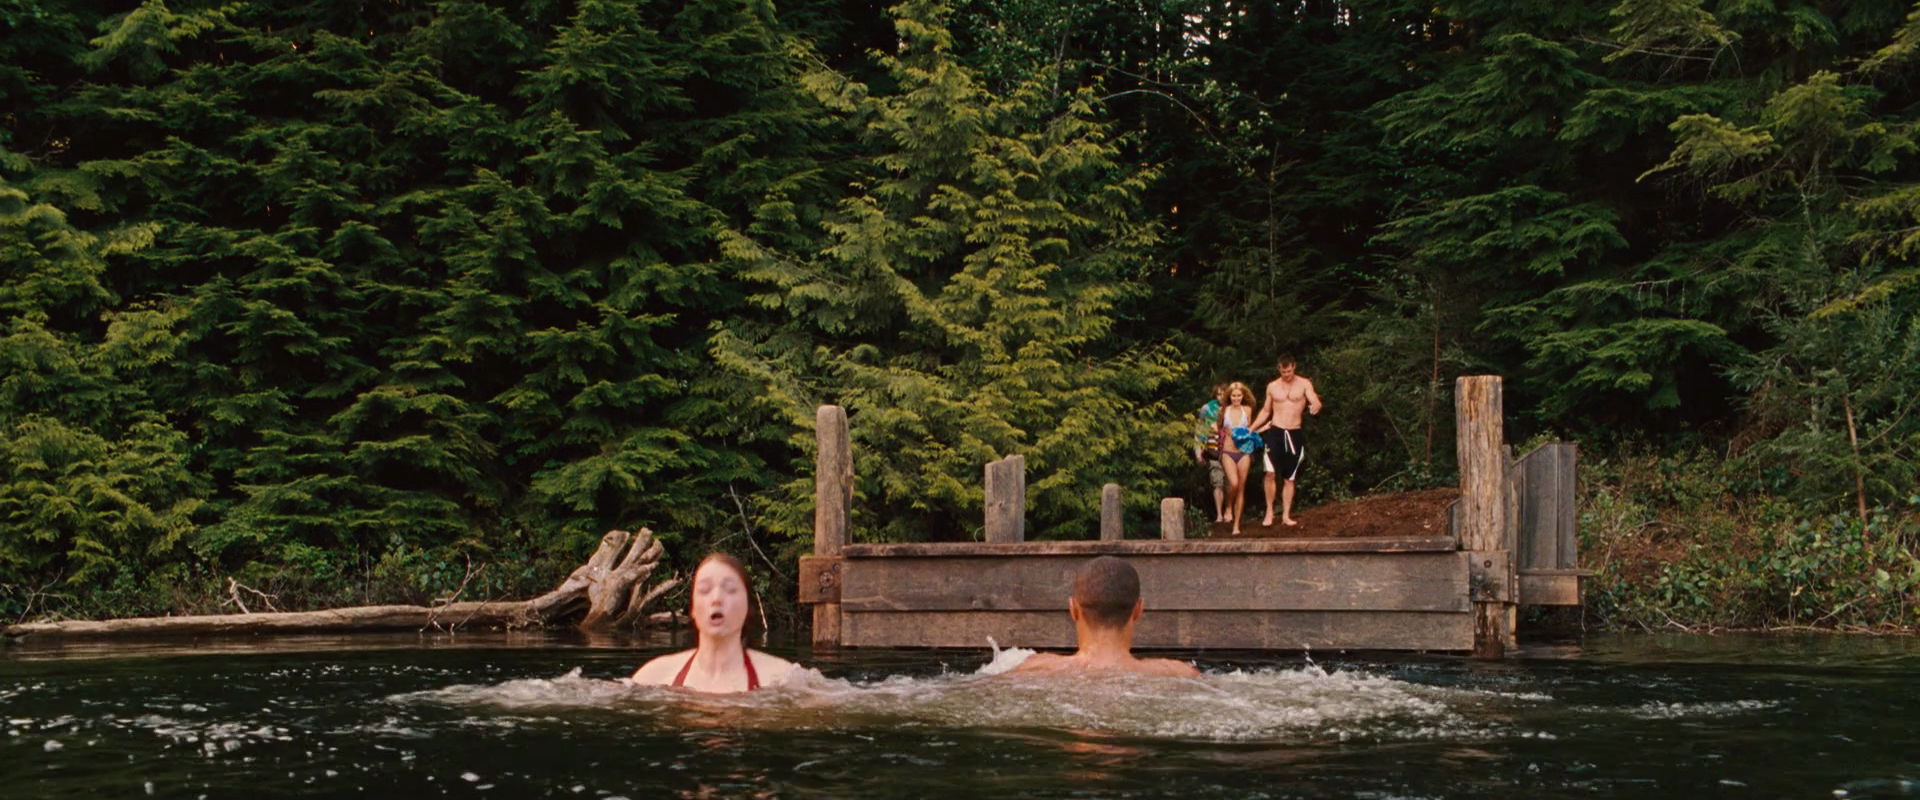 The Cabin In The Woods 2011 1080p BluRay x264-HDEX [PublicHD] preview 4